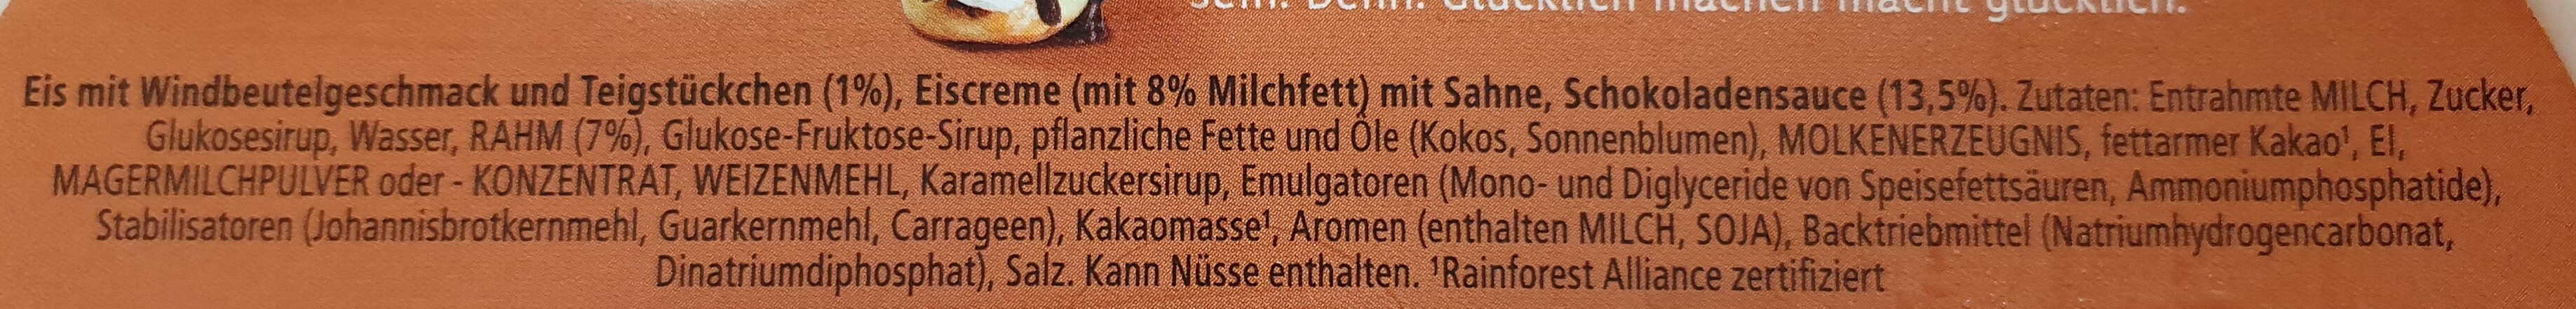 Schoko Windbeutel - Ingredients